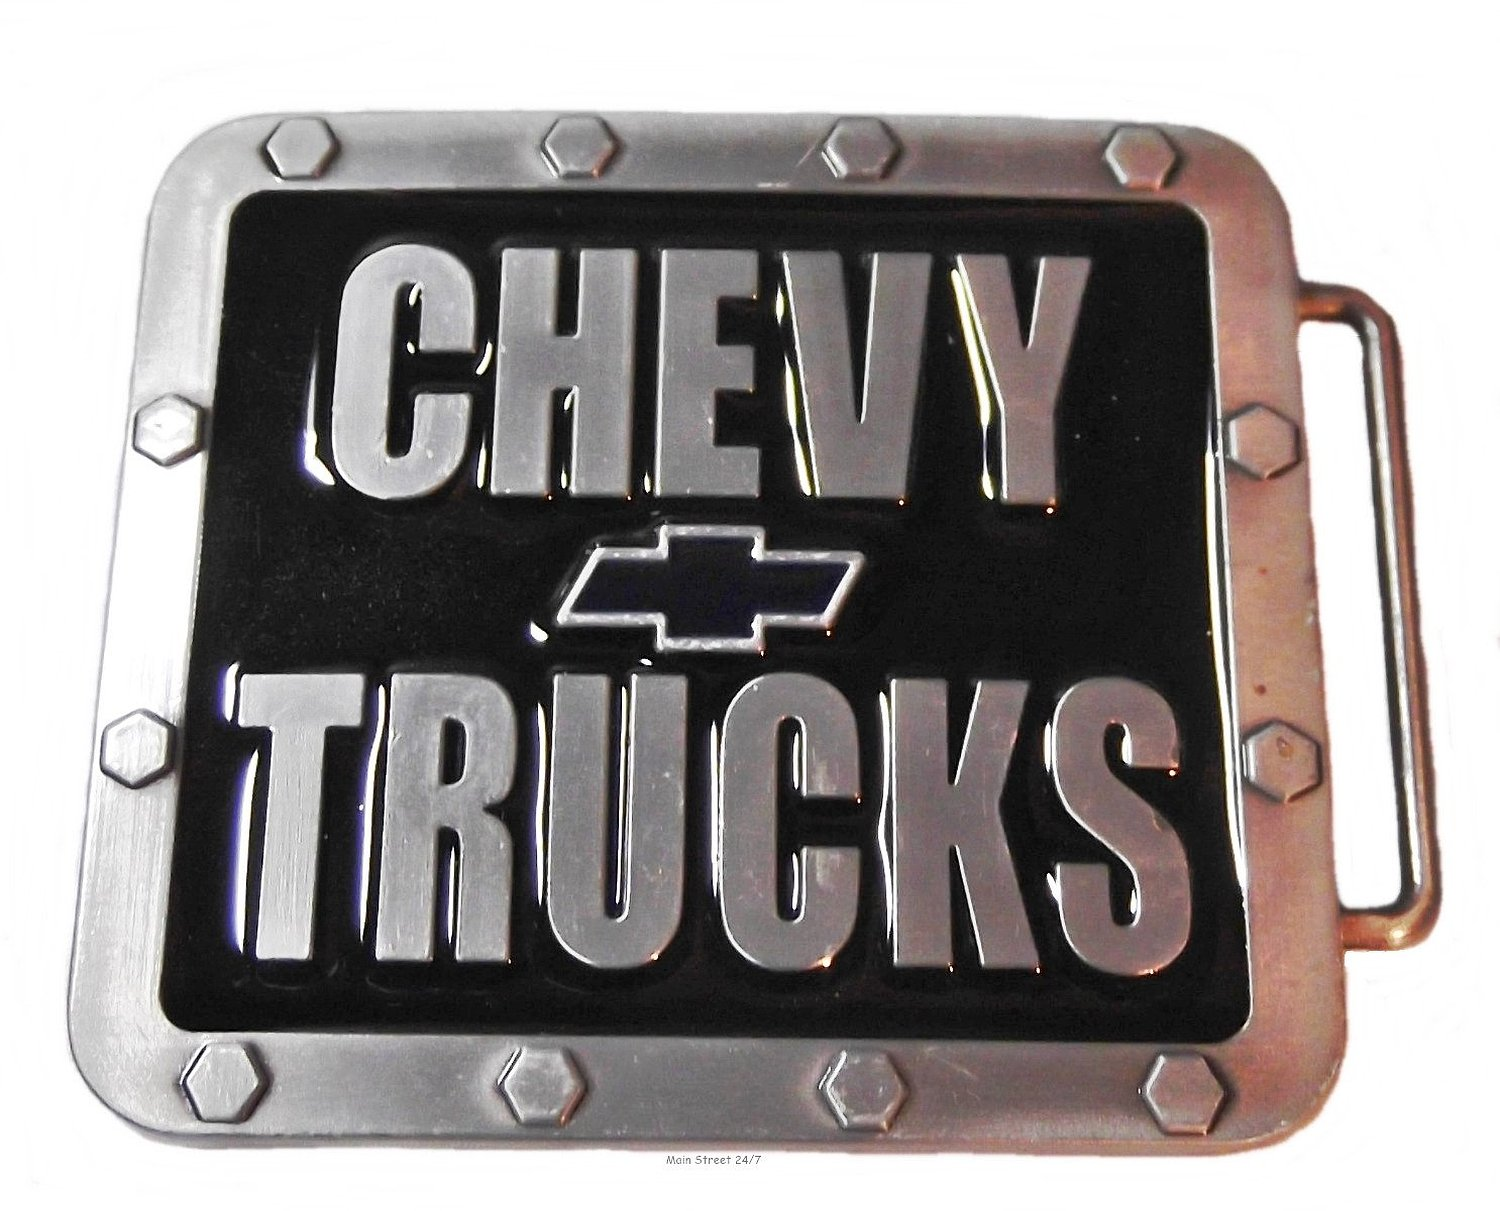 CHEVY TRUCKS Pewter Finished Metal and Enamel BELT BUCKLE